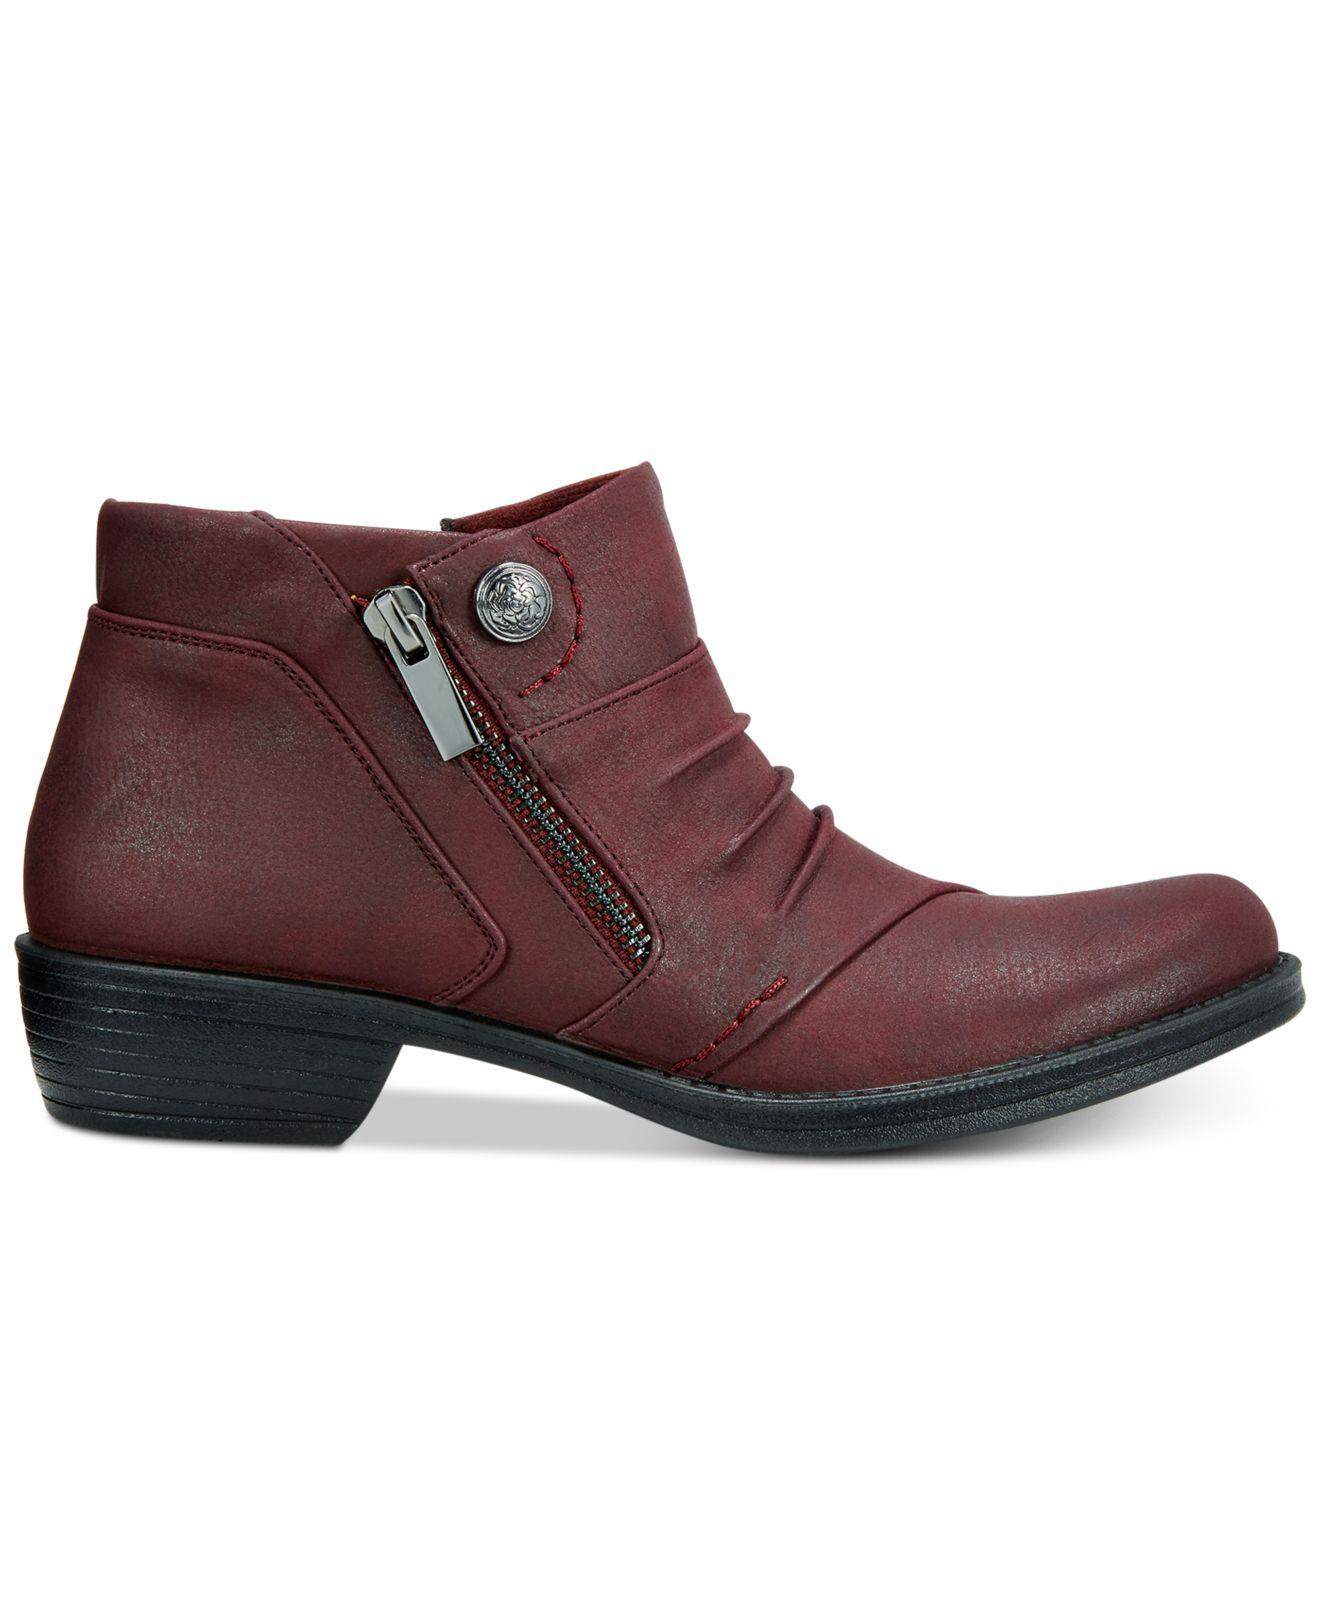 665f94831d34 Lyst - Easy Street Sable Booties